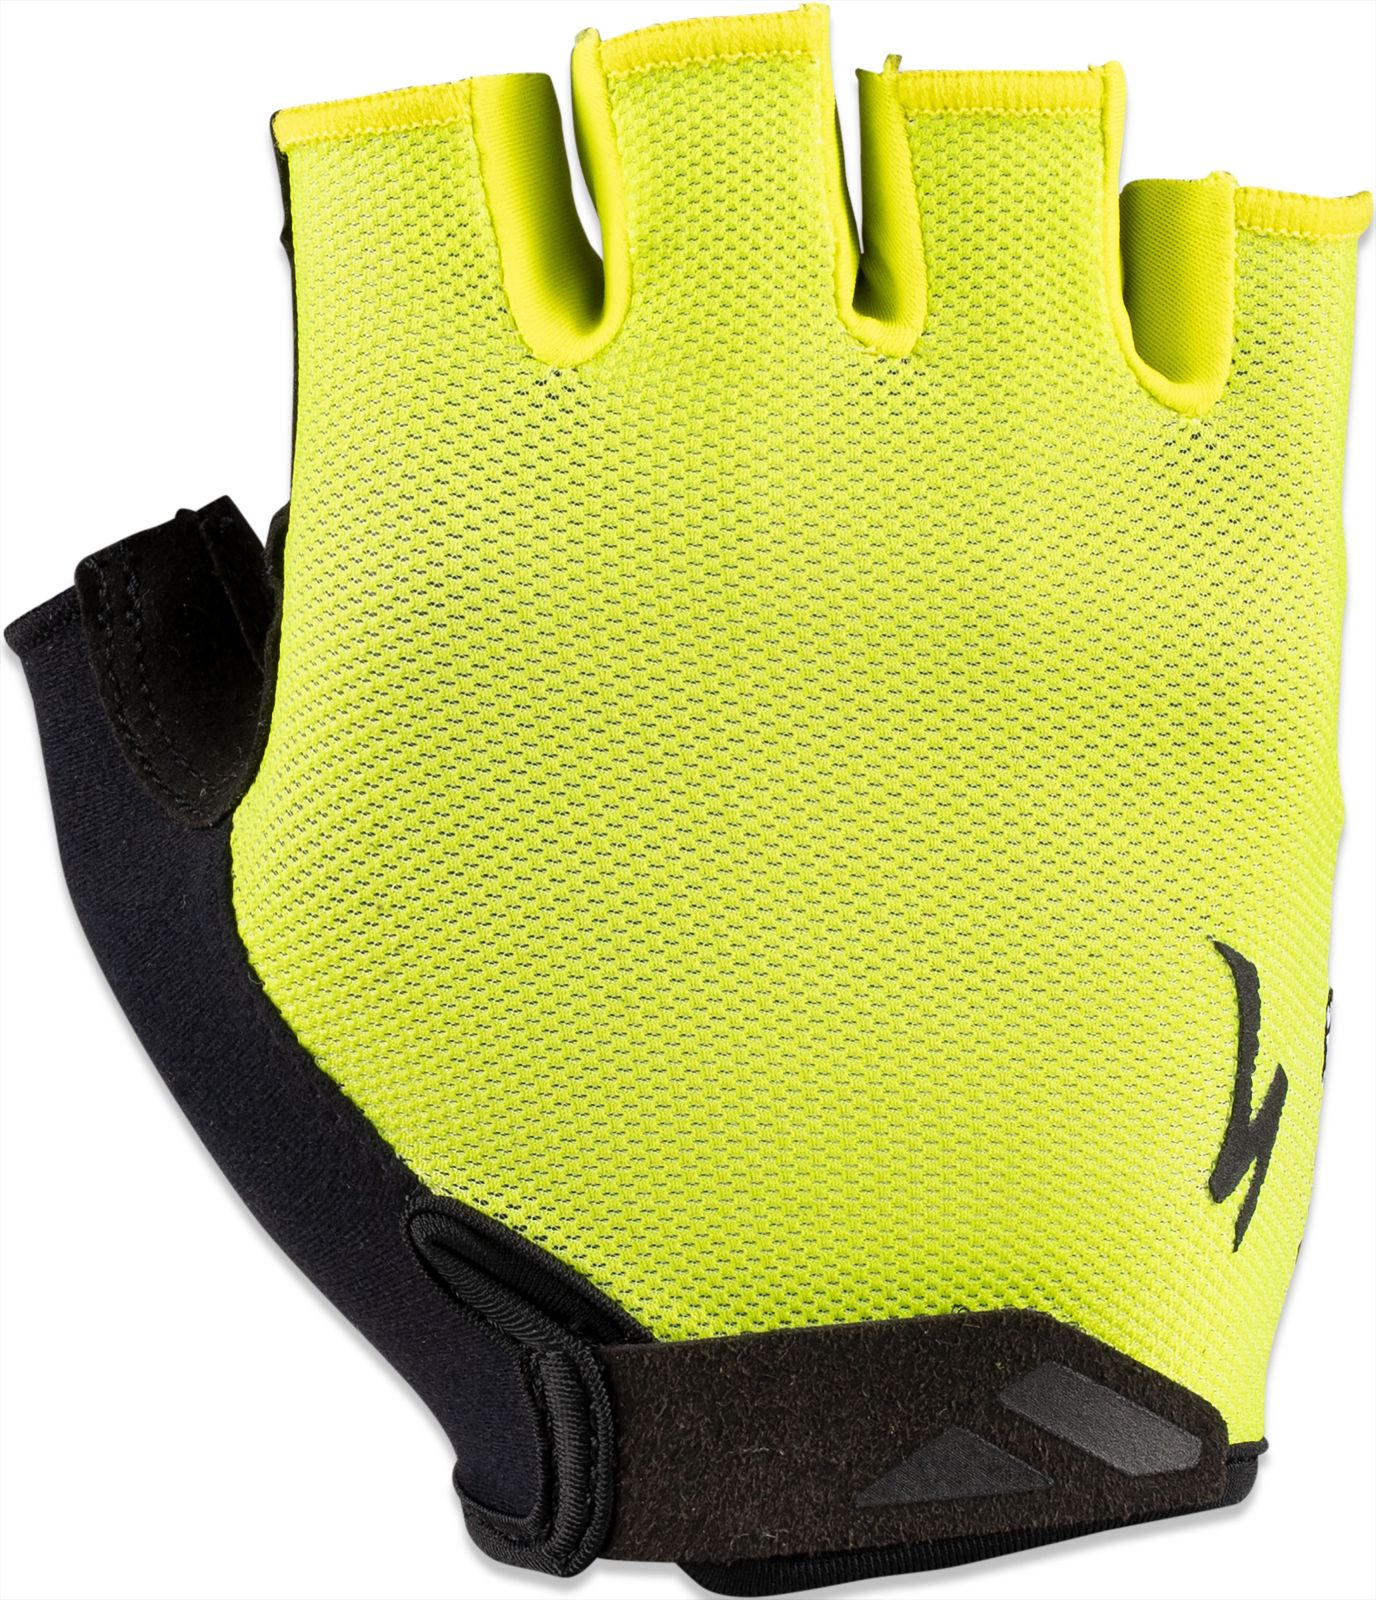 Specialized BG Sport Gel Glove SF - hyper green L